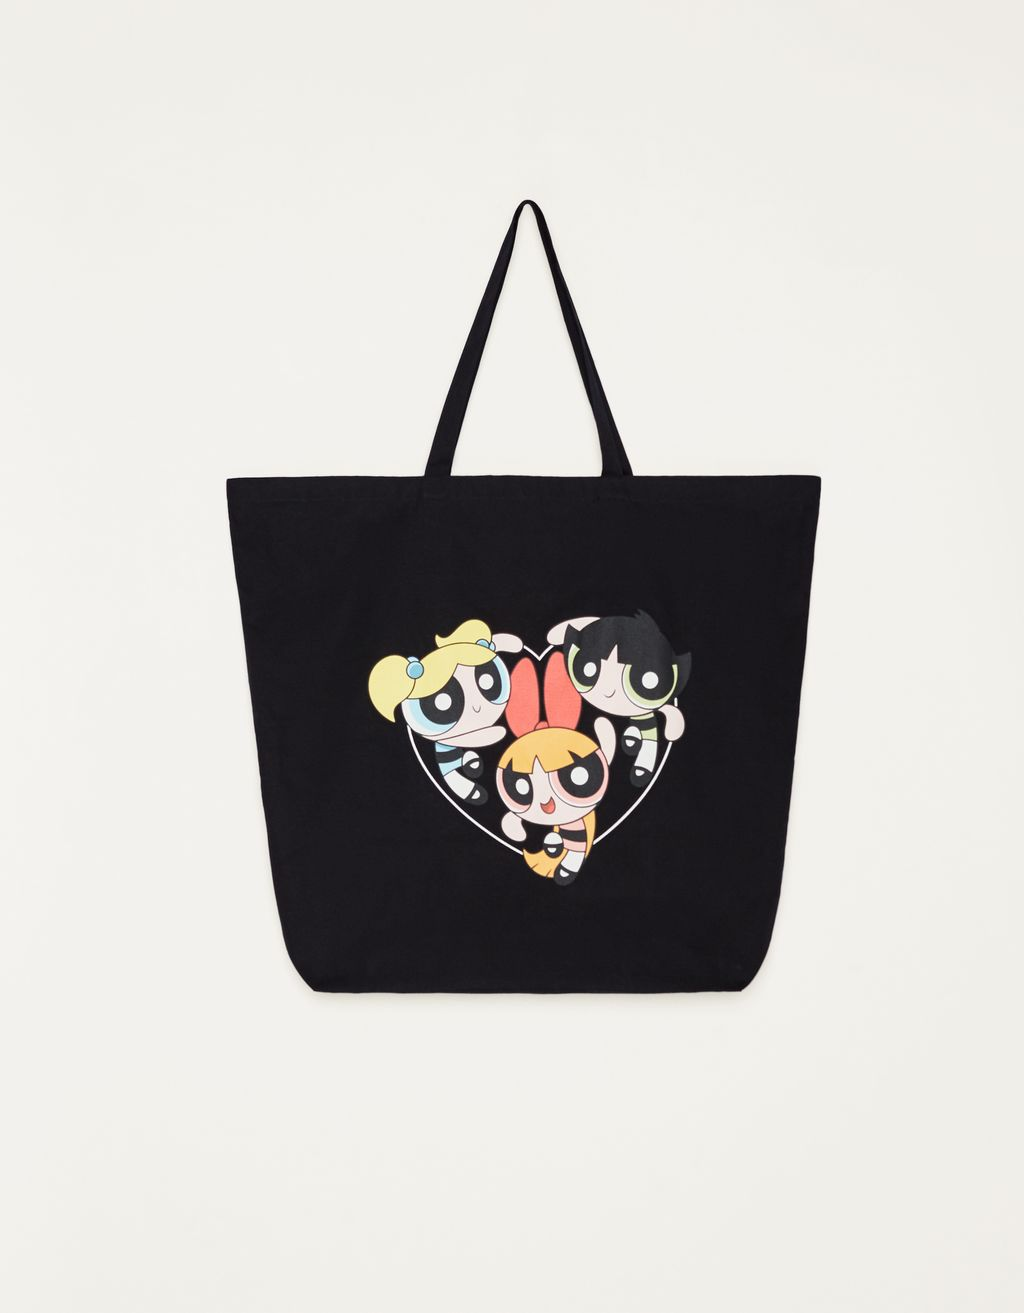 The Powerpuff Girls x Bershka tote bag